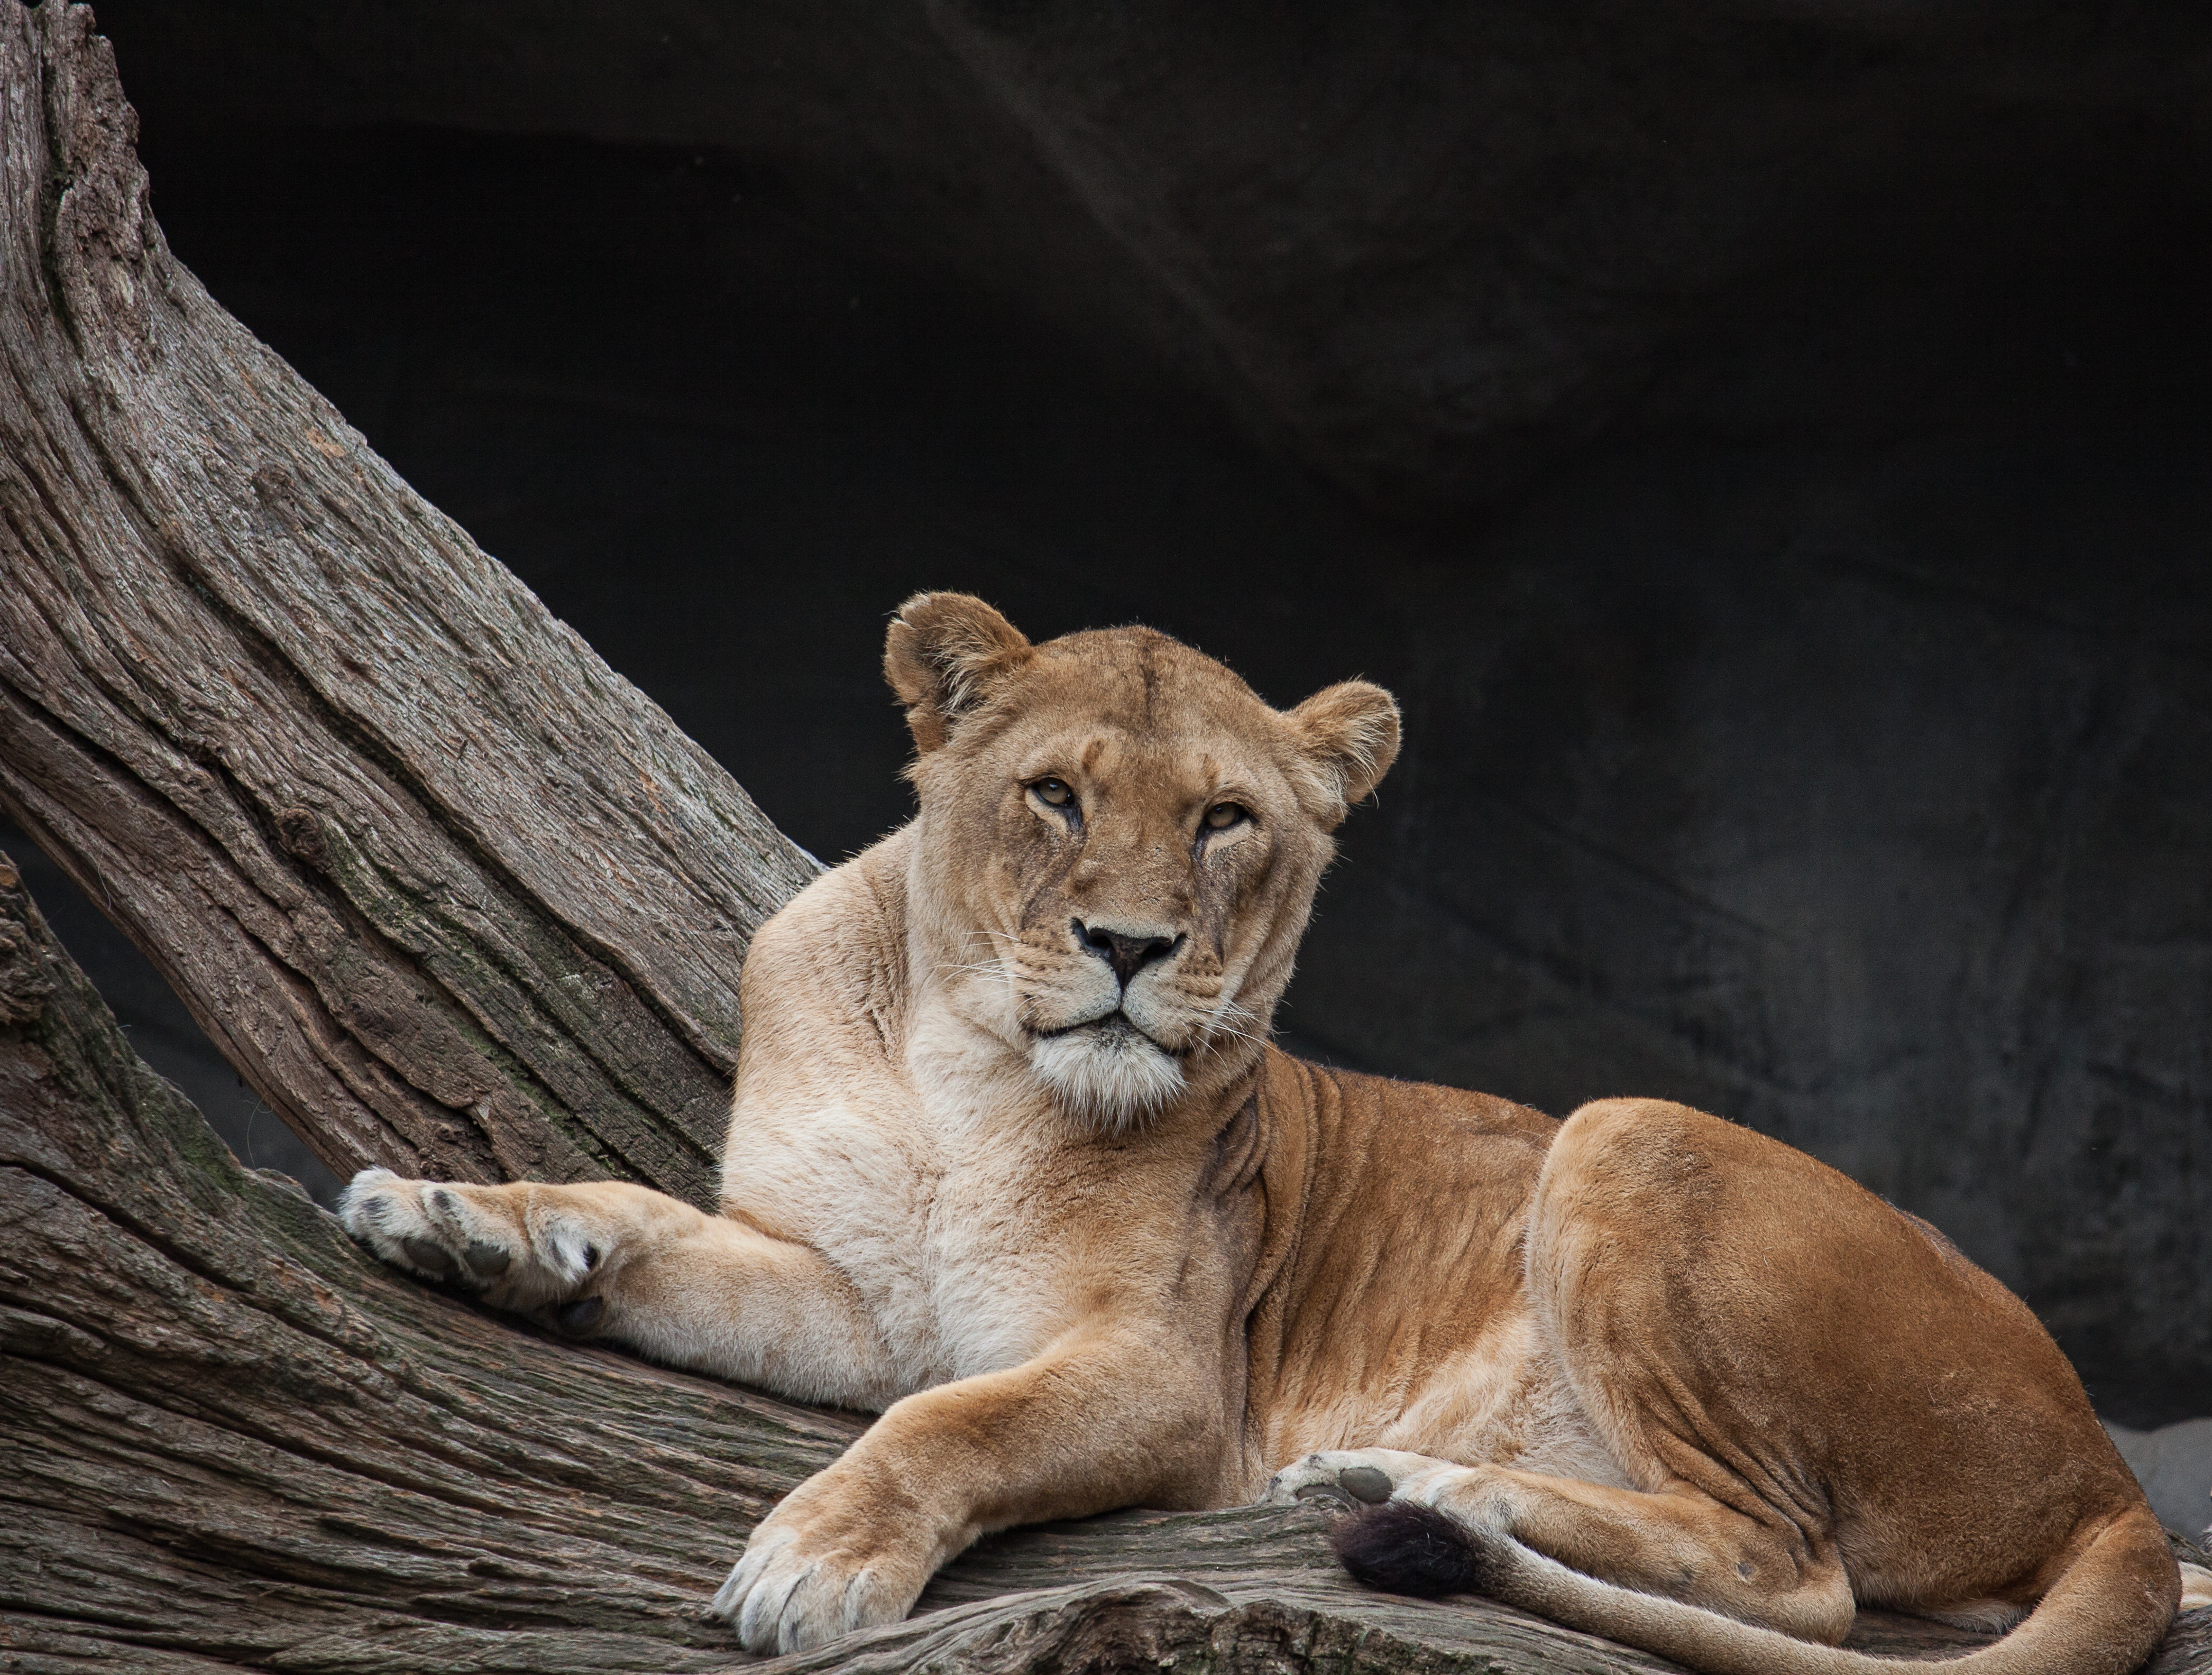 124148 download wallpaper Lion, Animals, Lies, Predator, Lioness screensavers and pictures for free